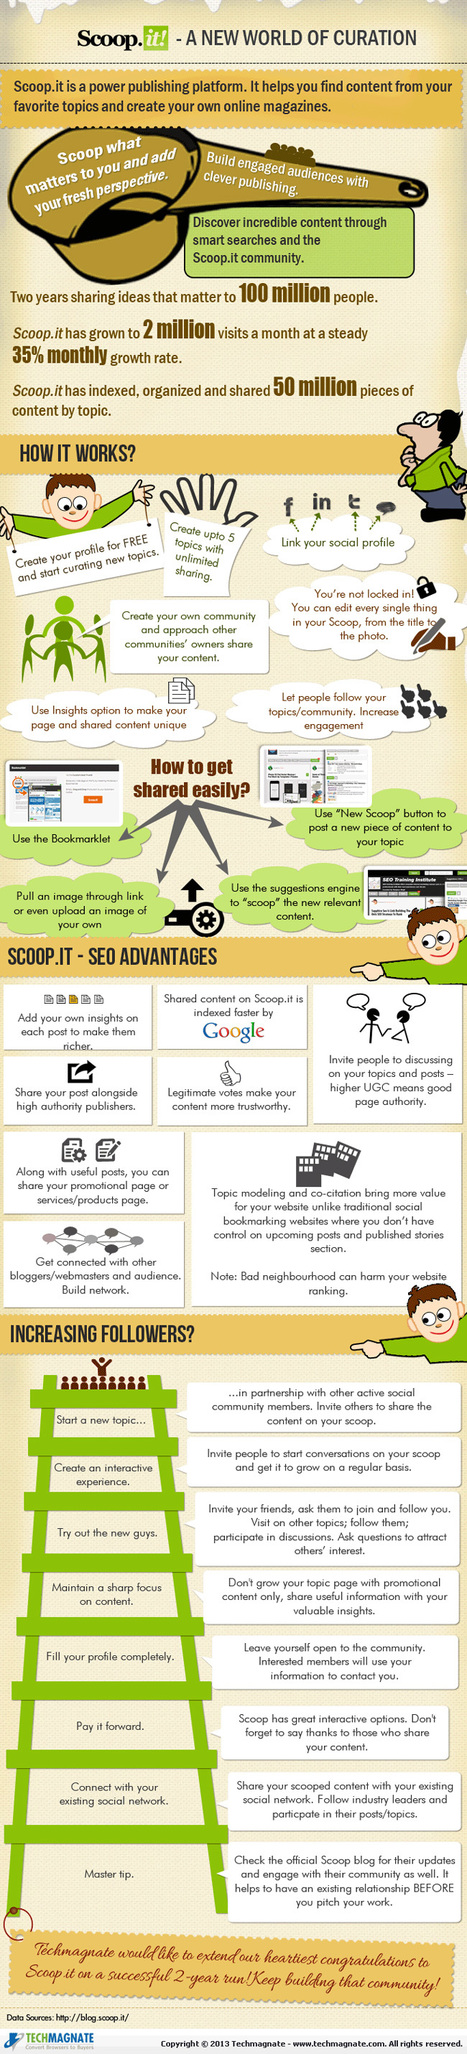 Scoop.It for SEO – A New World of Curation [Infographic] | social media infographics and typography | Scoop.it